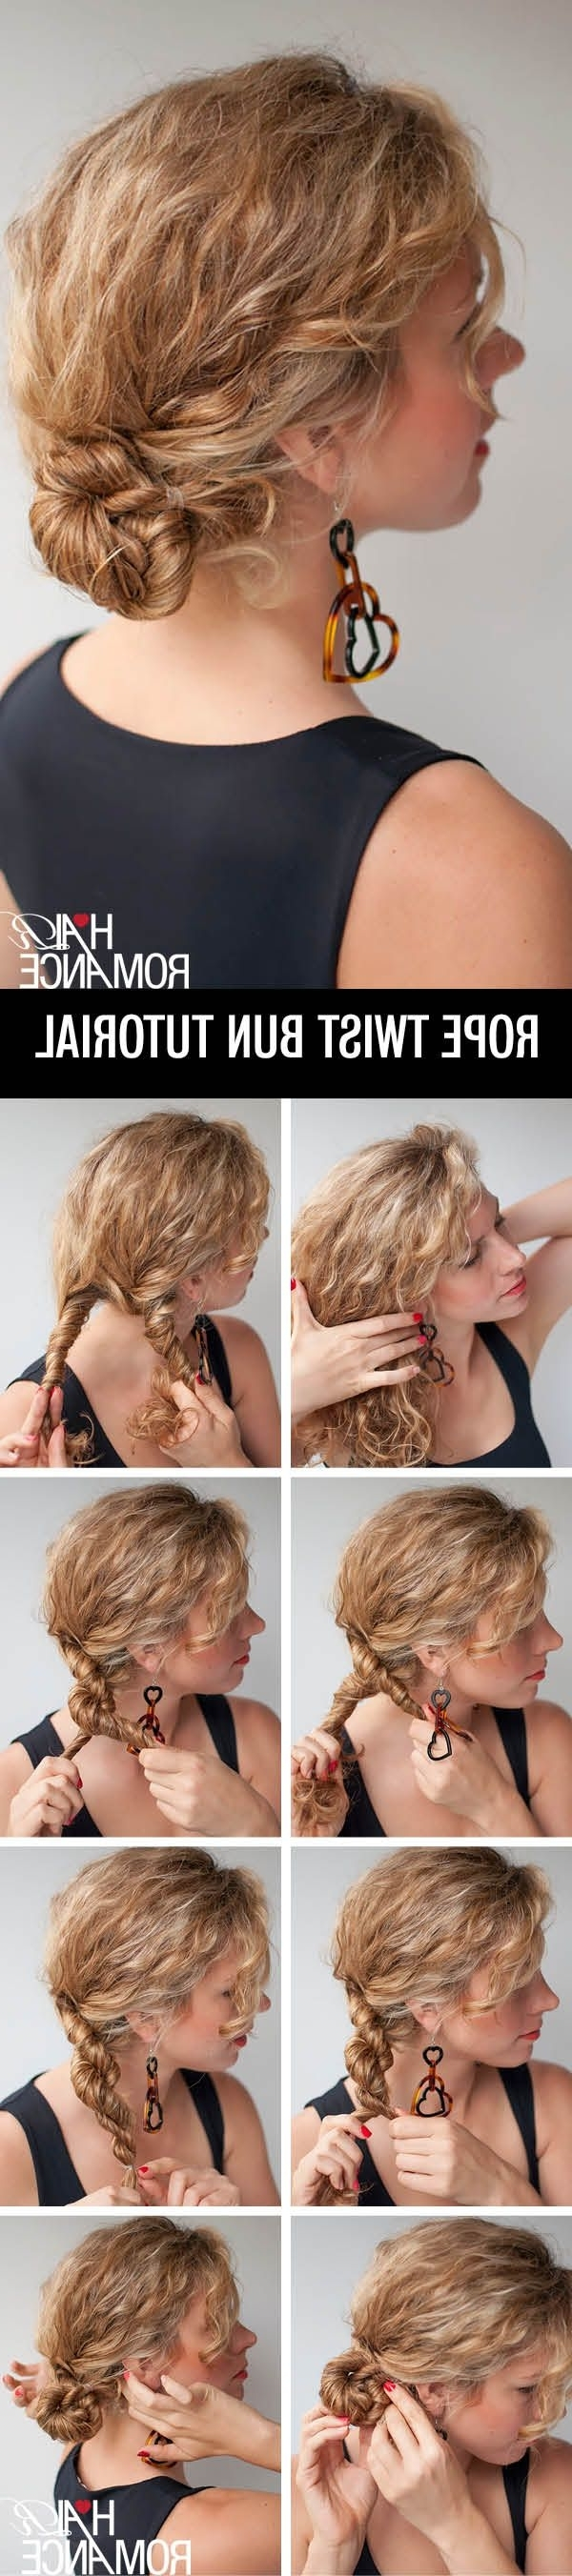 32 Easy Hairstyles For Curly Hair (For Short, Long & Shoulder Length Within Diy Updos For Curly Hair (View 3 of 15)